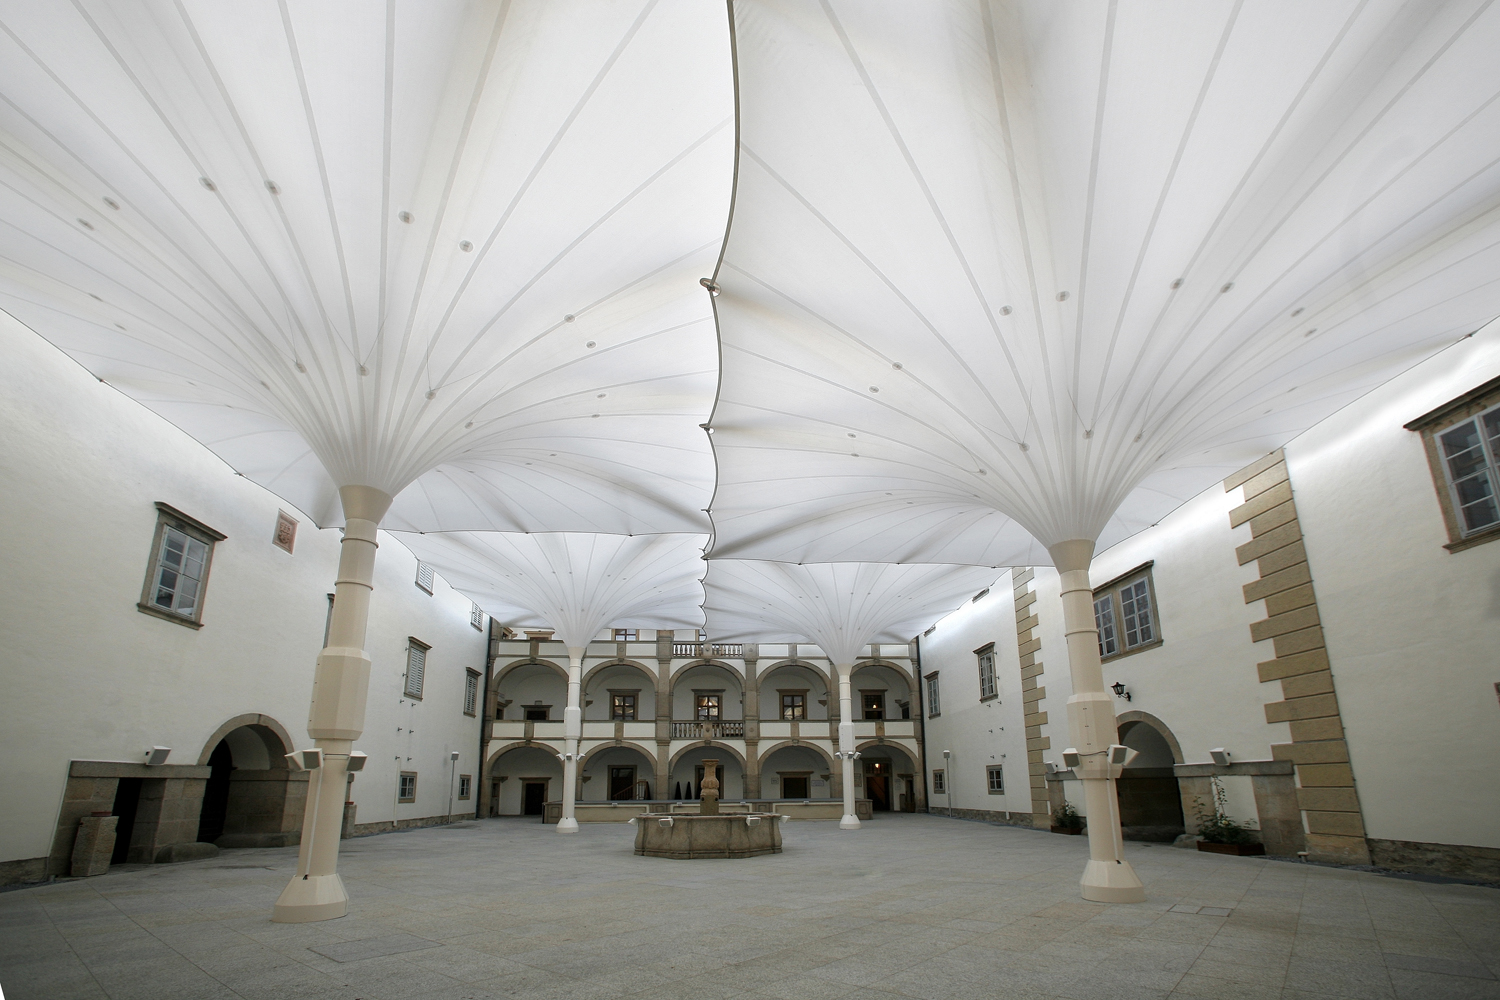 Materiel Culture Interieur Castle Weitra Courtyard Architect Magazine Sefar